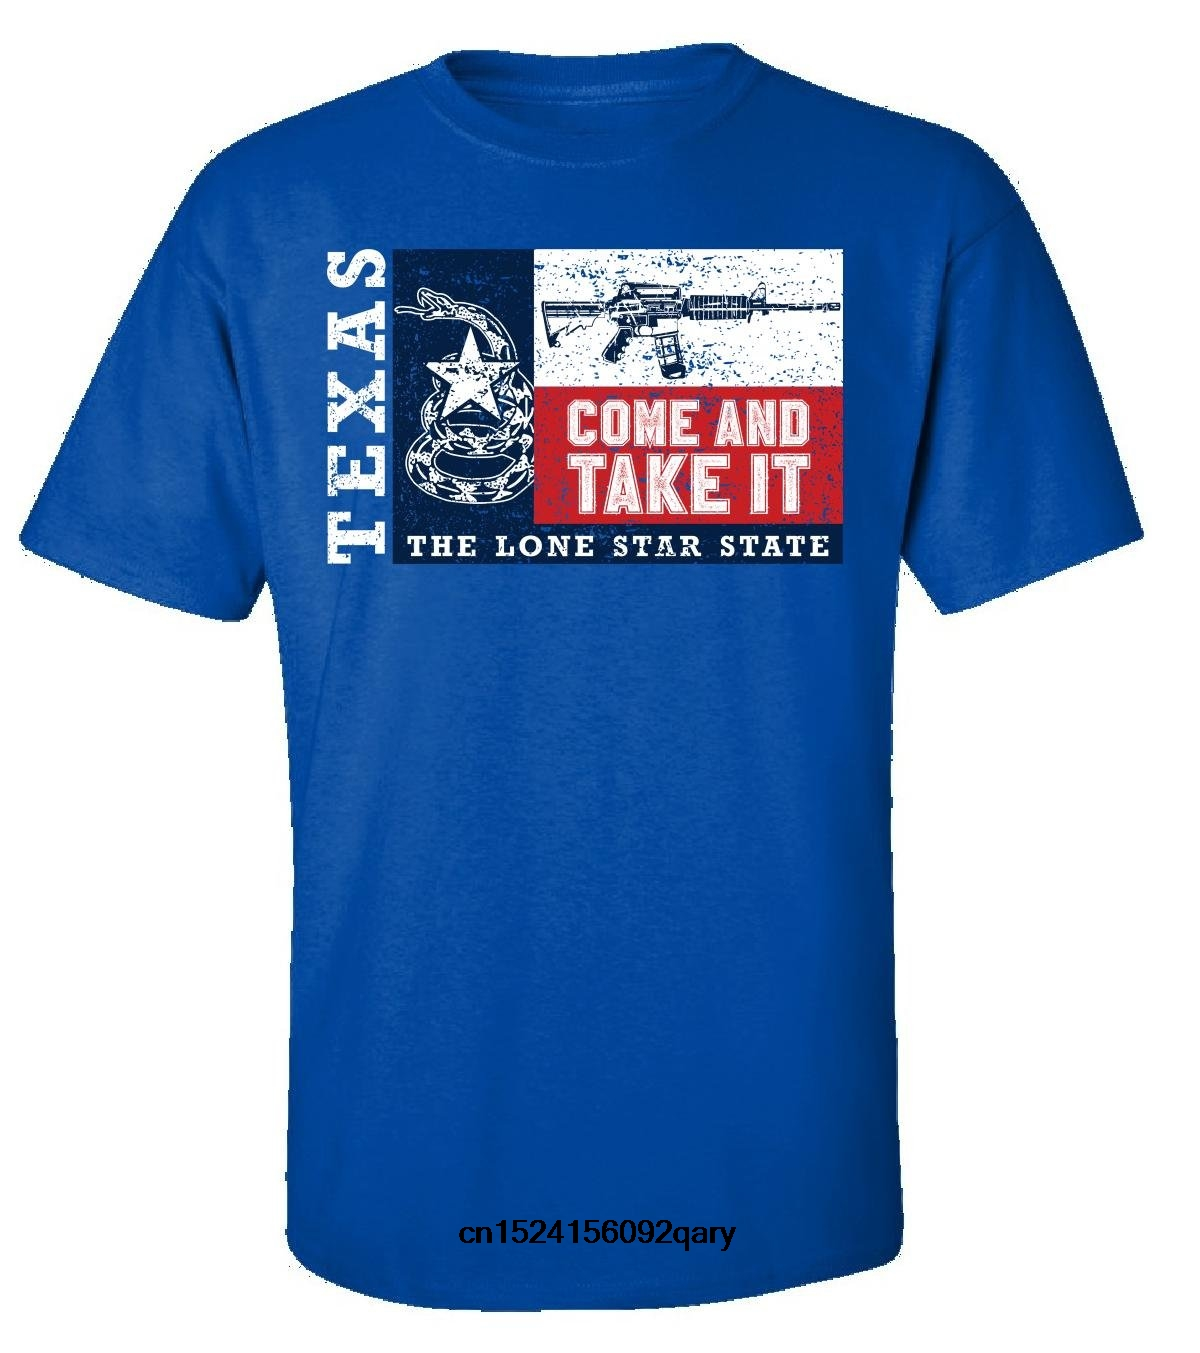 Men Funny T <font><b>Shirt</b></font> Women Cool tshirt Texas Flag Come And Take It Gun Ar15 <font><b>Ar</b></font> 15 Texan - Adult <font><b>Shirt</b></font> image